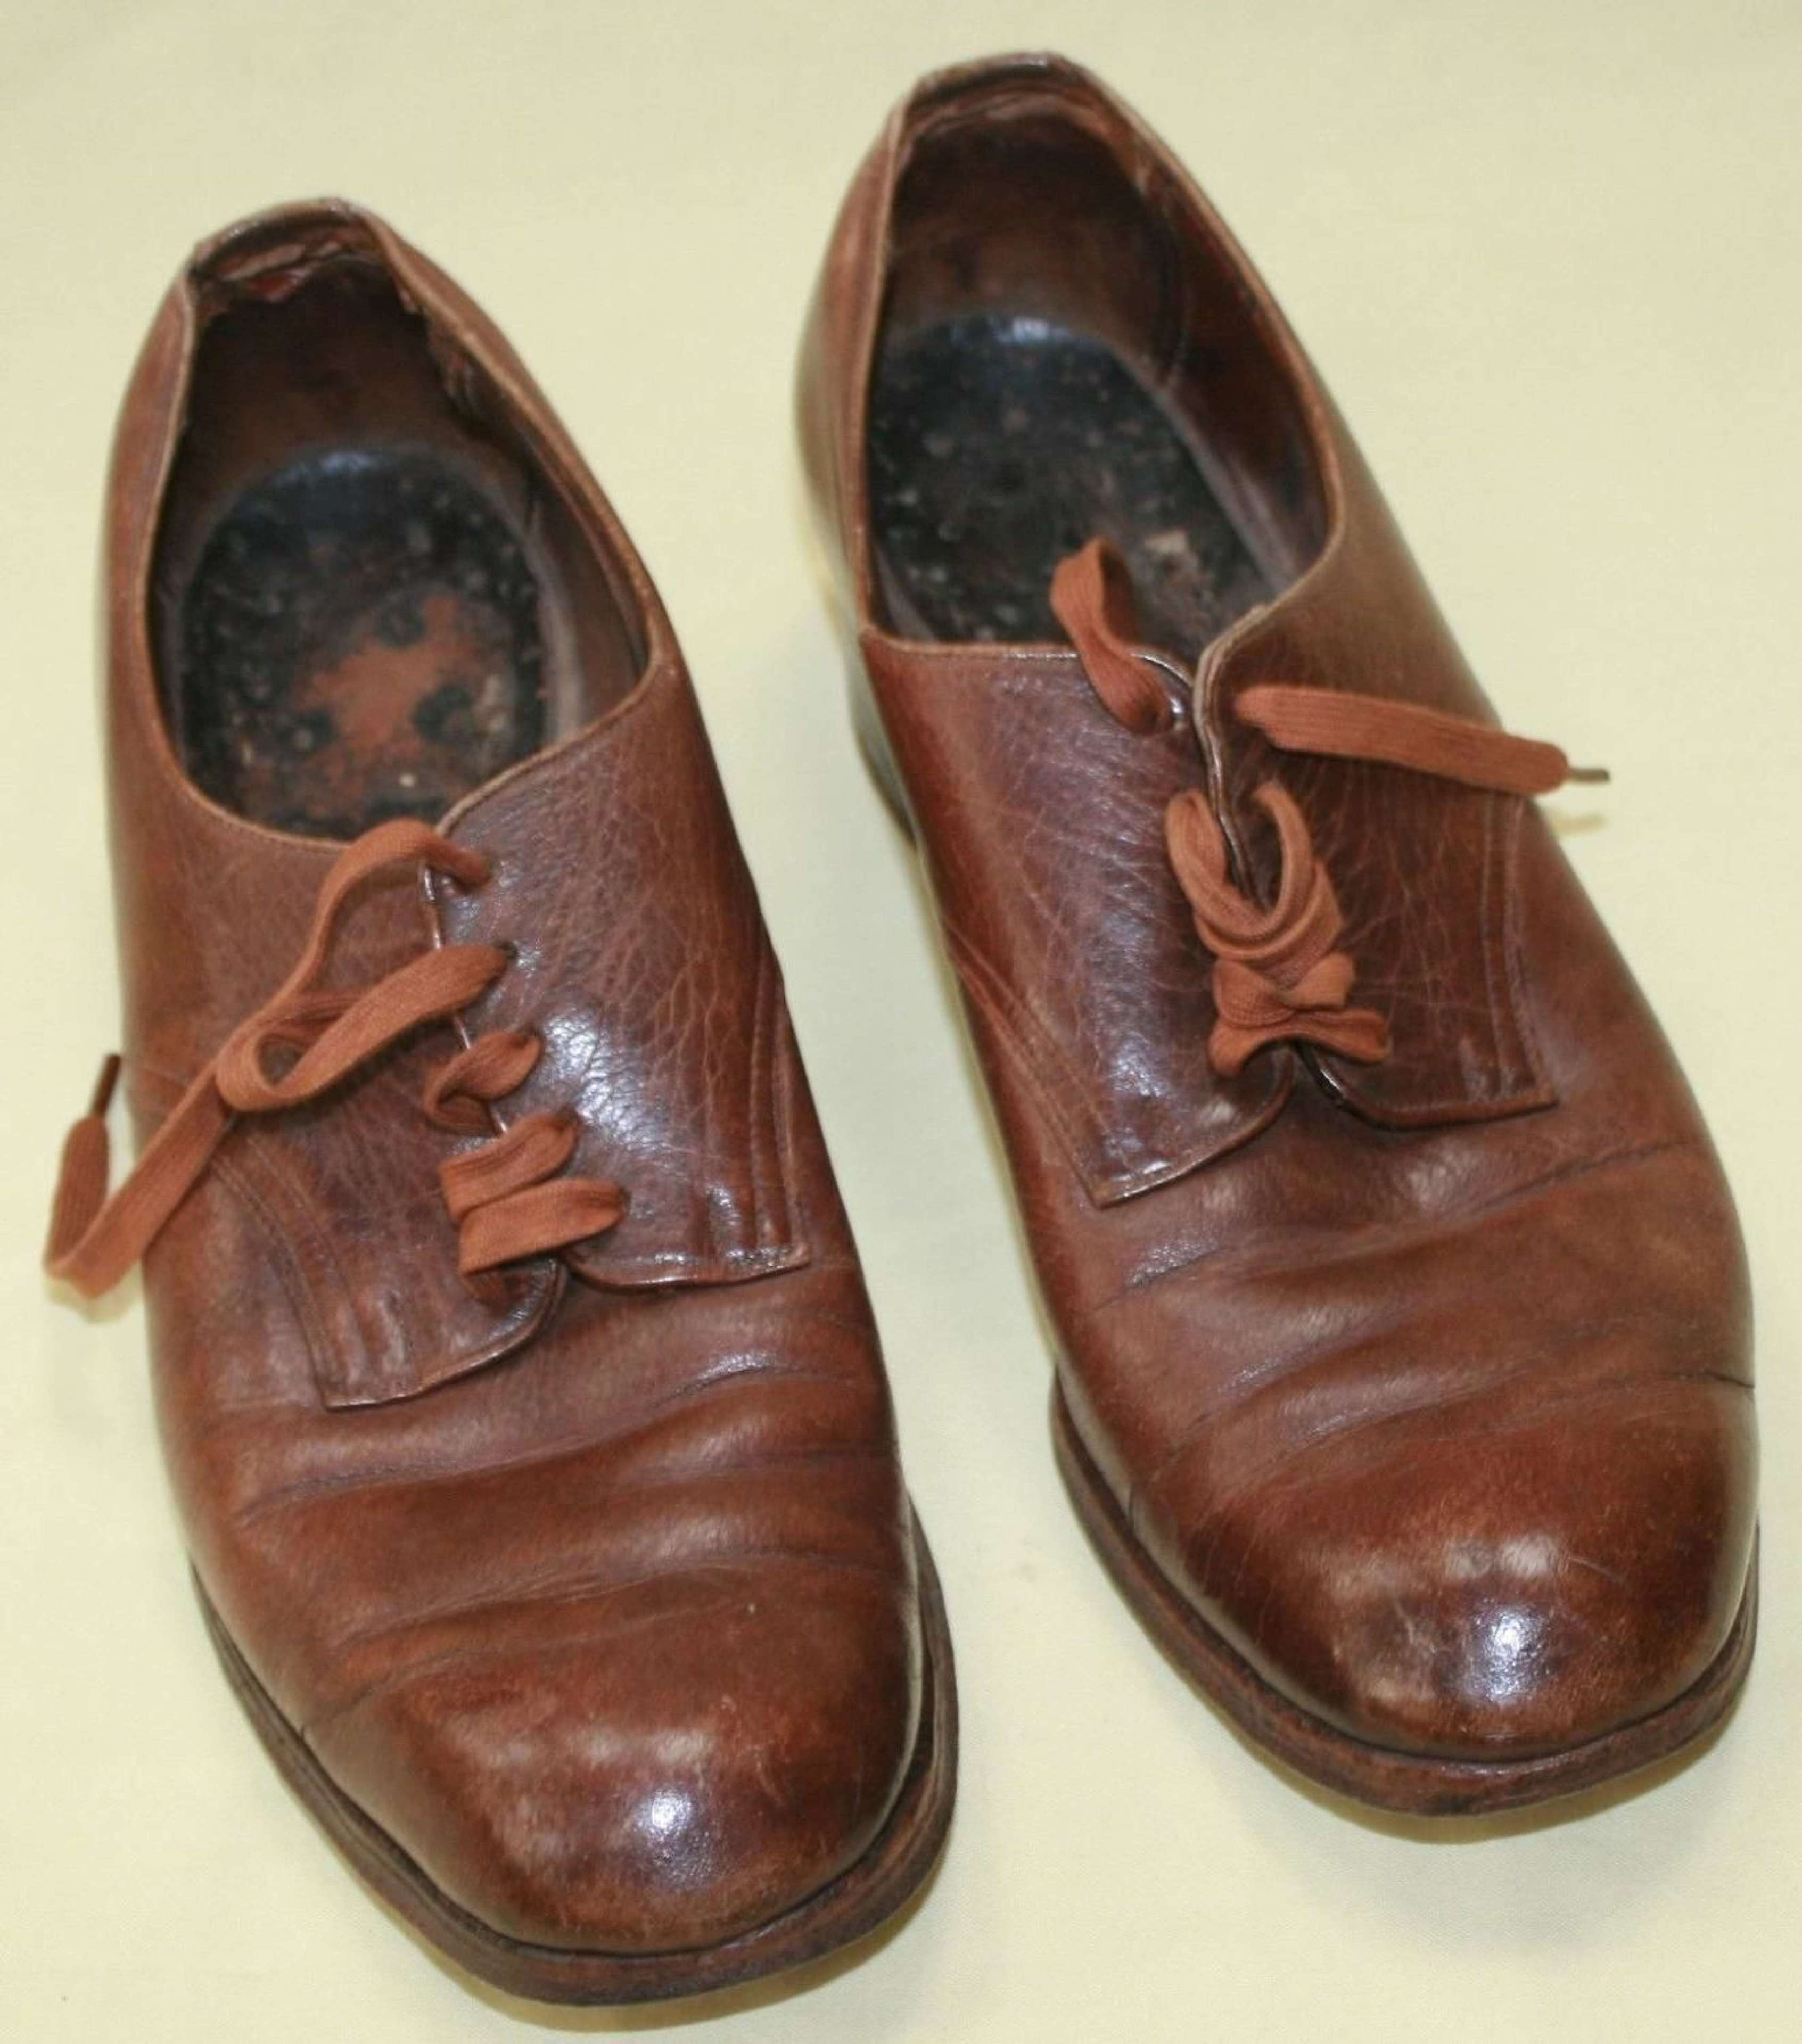 A PAIR OF ATS 1944 DATED SHOES